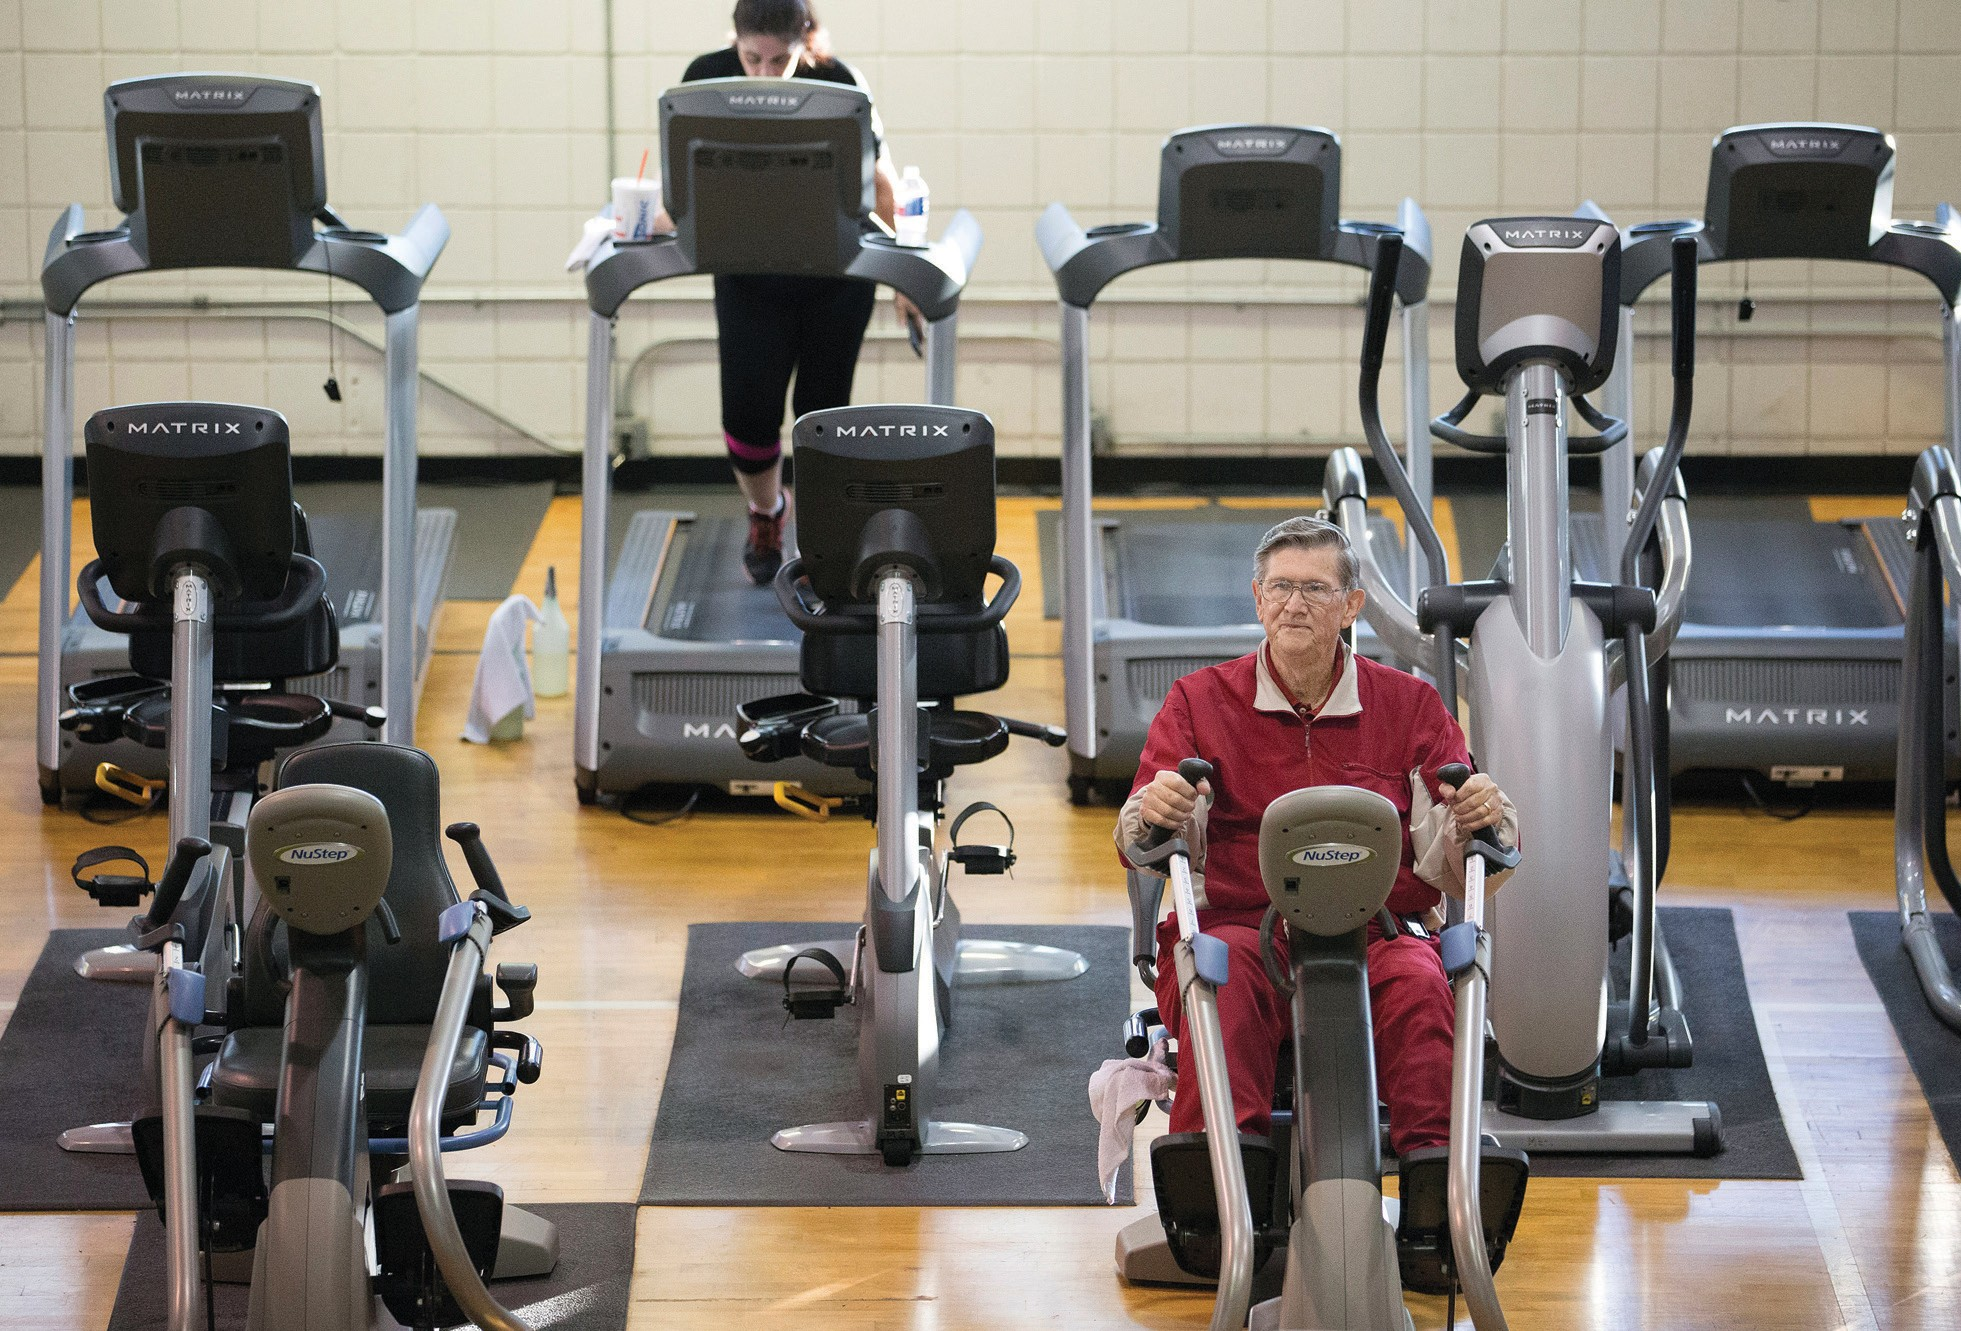 In this photo taken Dec. 22, 2015, Glendon Bassett does a cardio workout at the Family YMCA in Hot Springs, Ark. Bassett, a retired chemical engineer, says he can vouch for the teamwork approach Medicare is promoting.